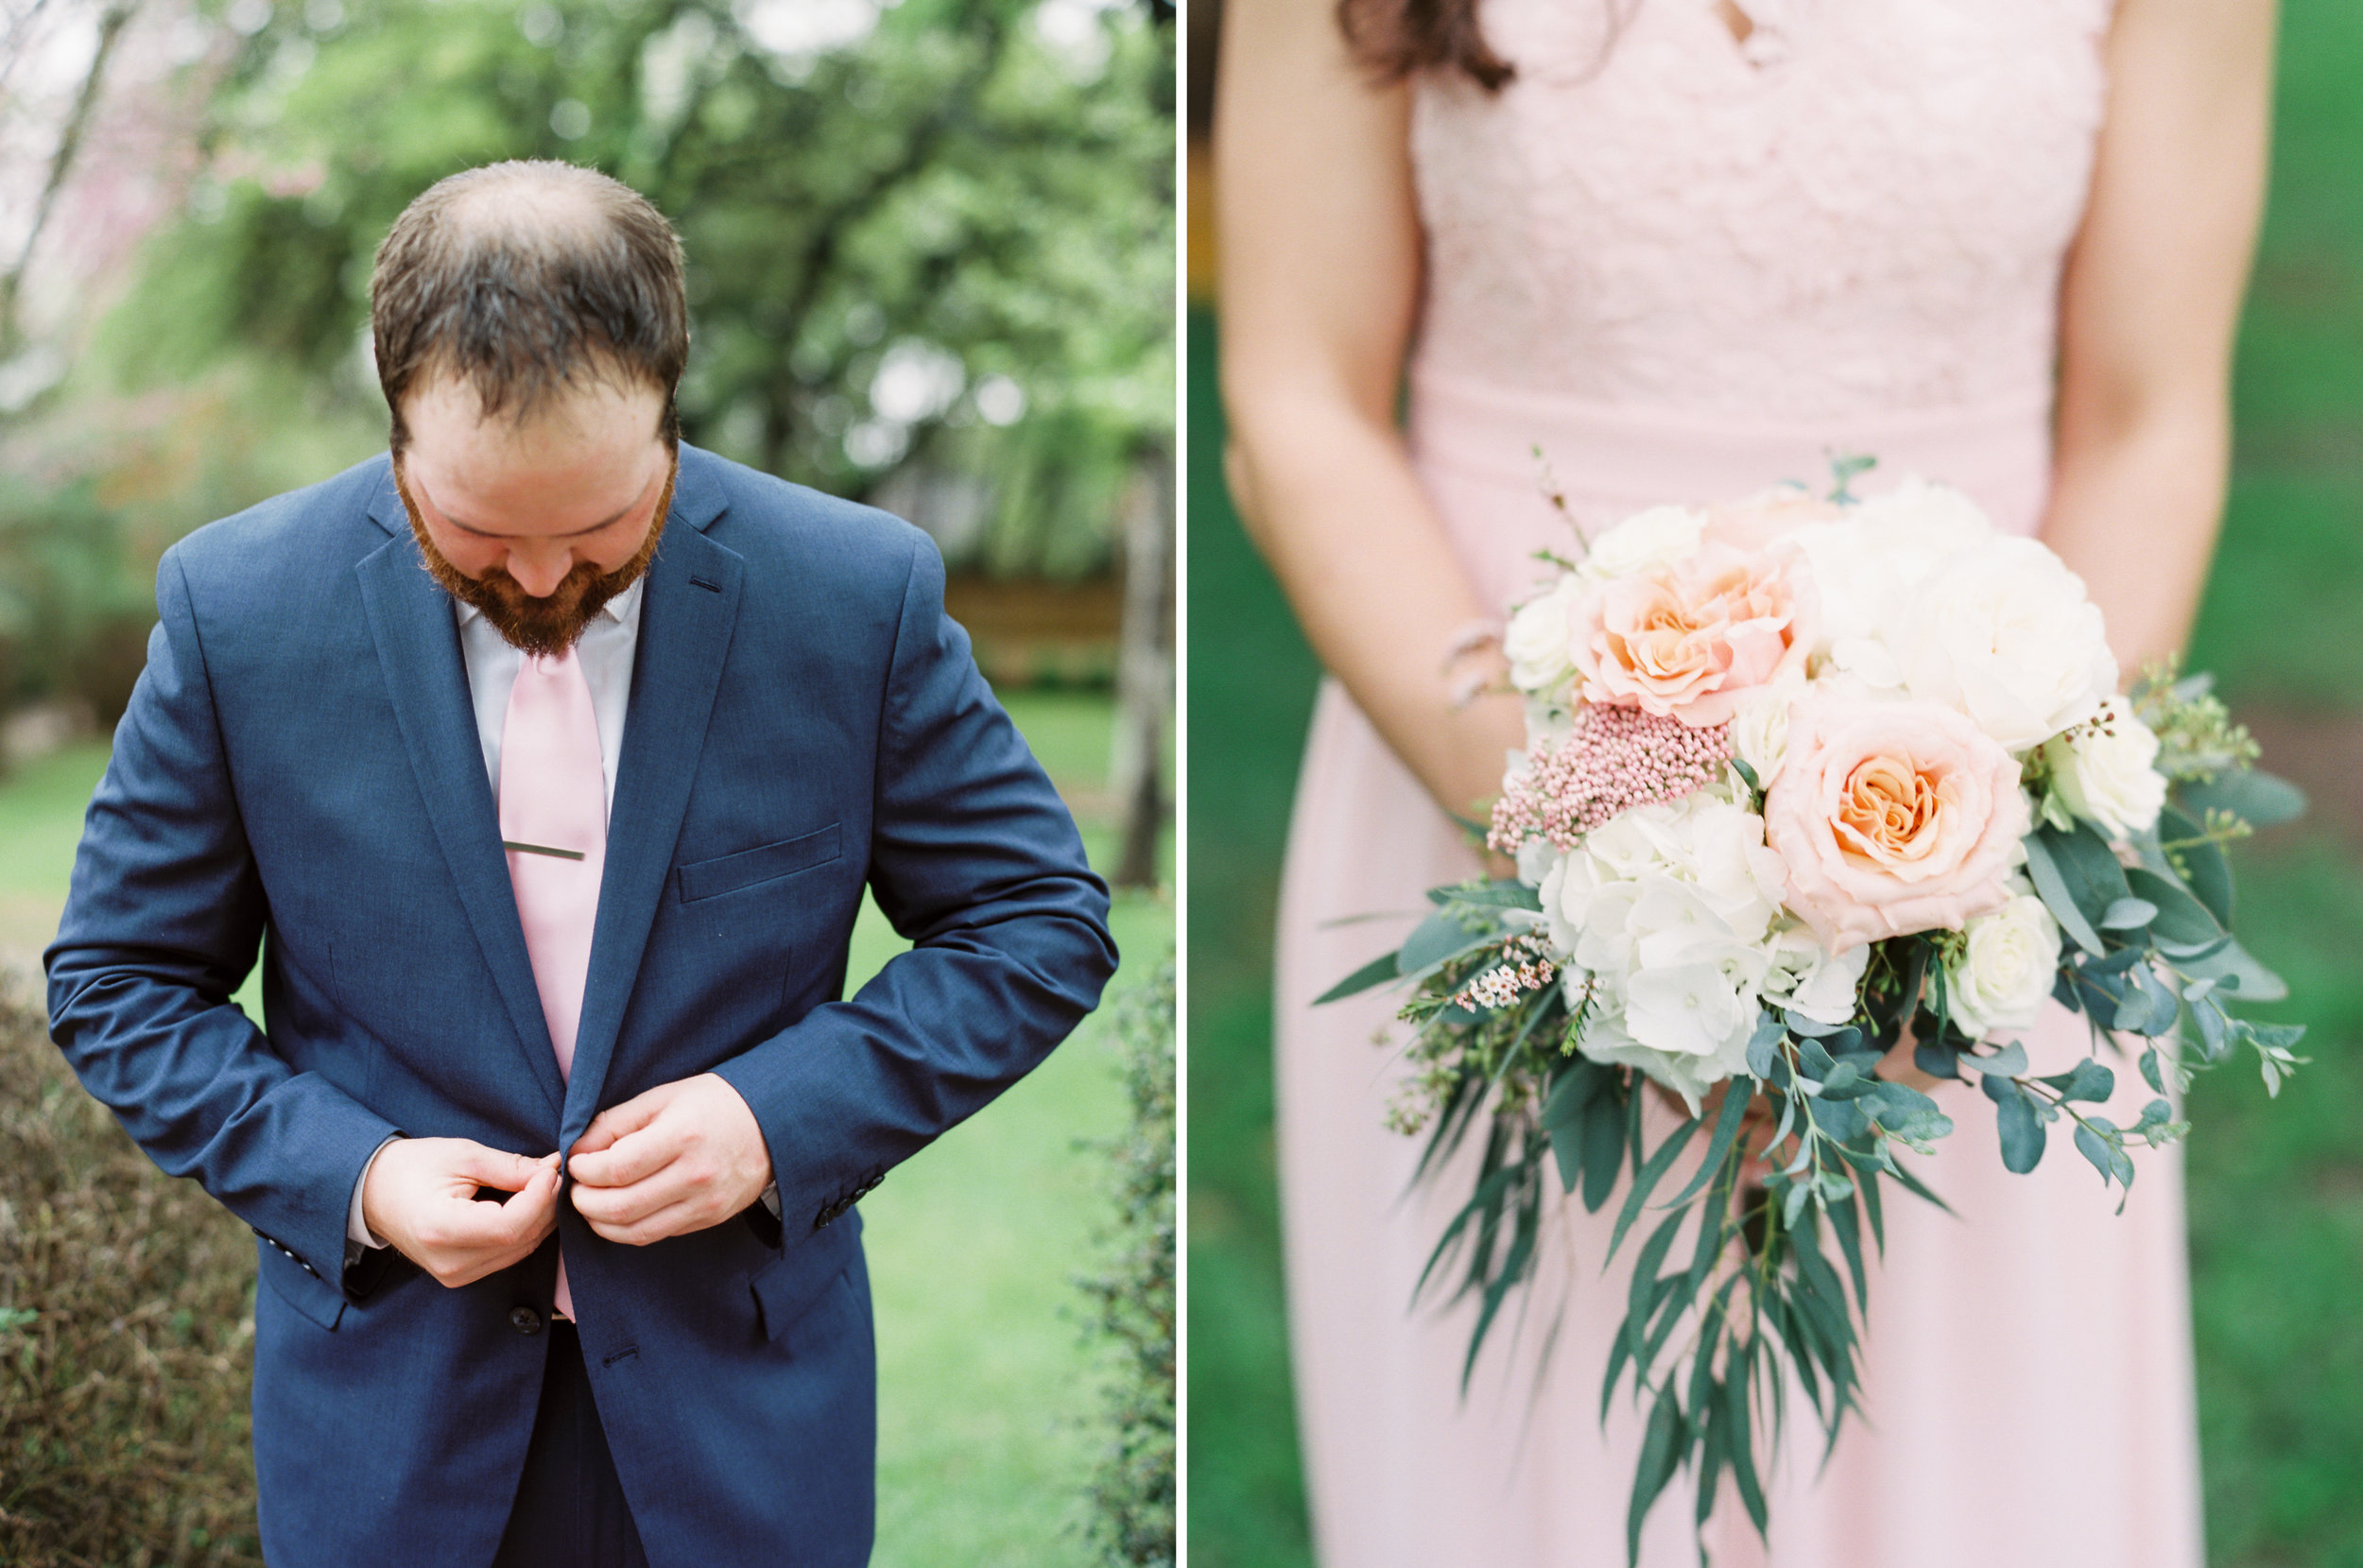 Hill Country Spring Wedding at Red Bud Hall | Austin Wedding Photographer | Film Wedding Photographer | Britni Dean Photography | Rainy Day Wedding Inspiration | blush and navy wedding inspiration